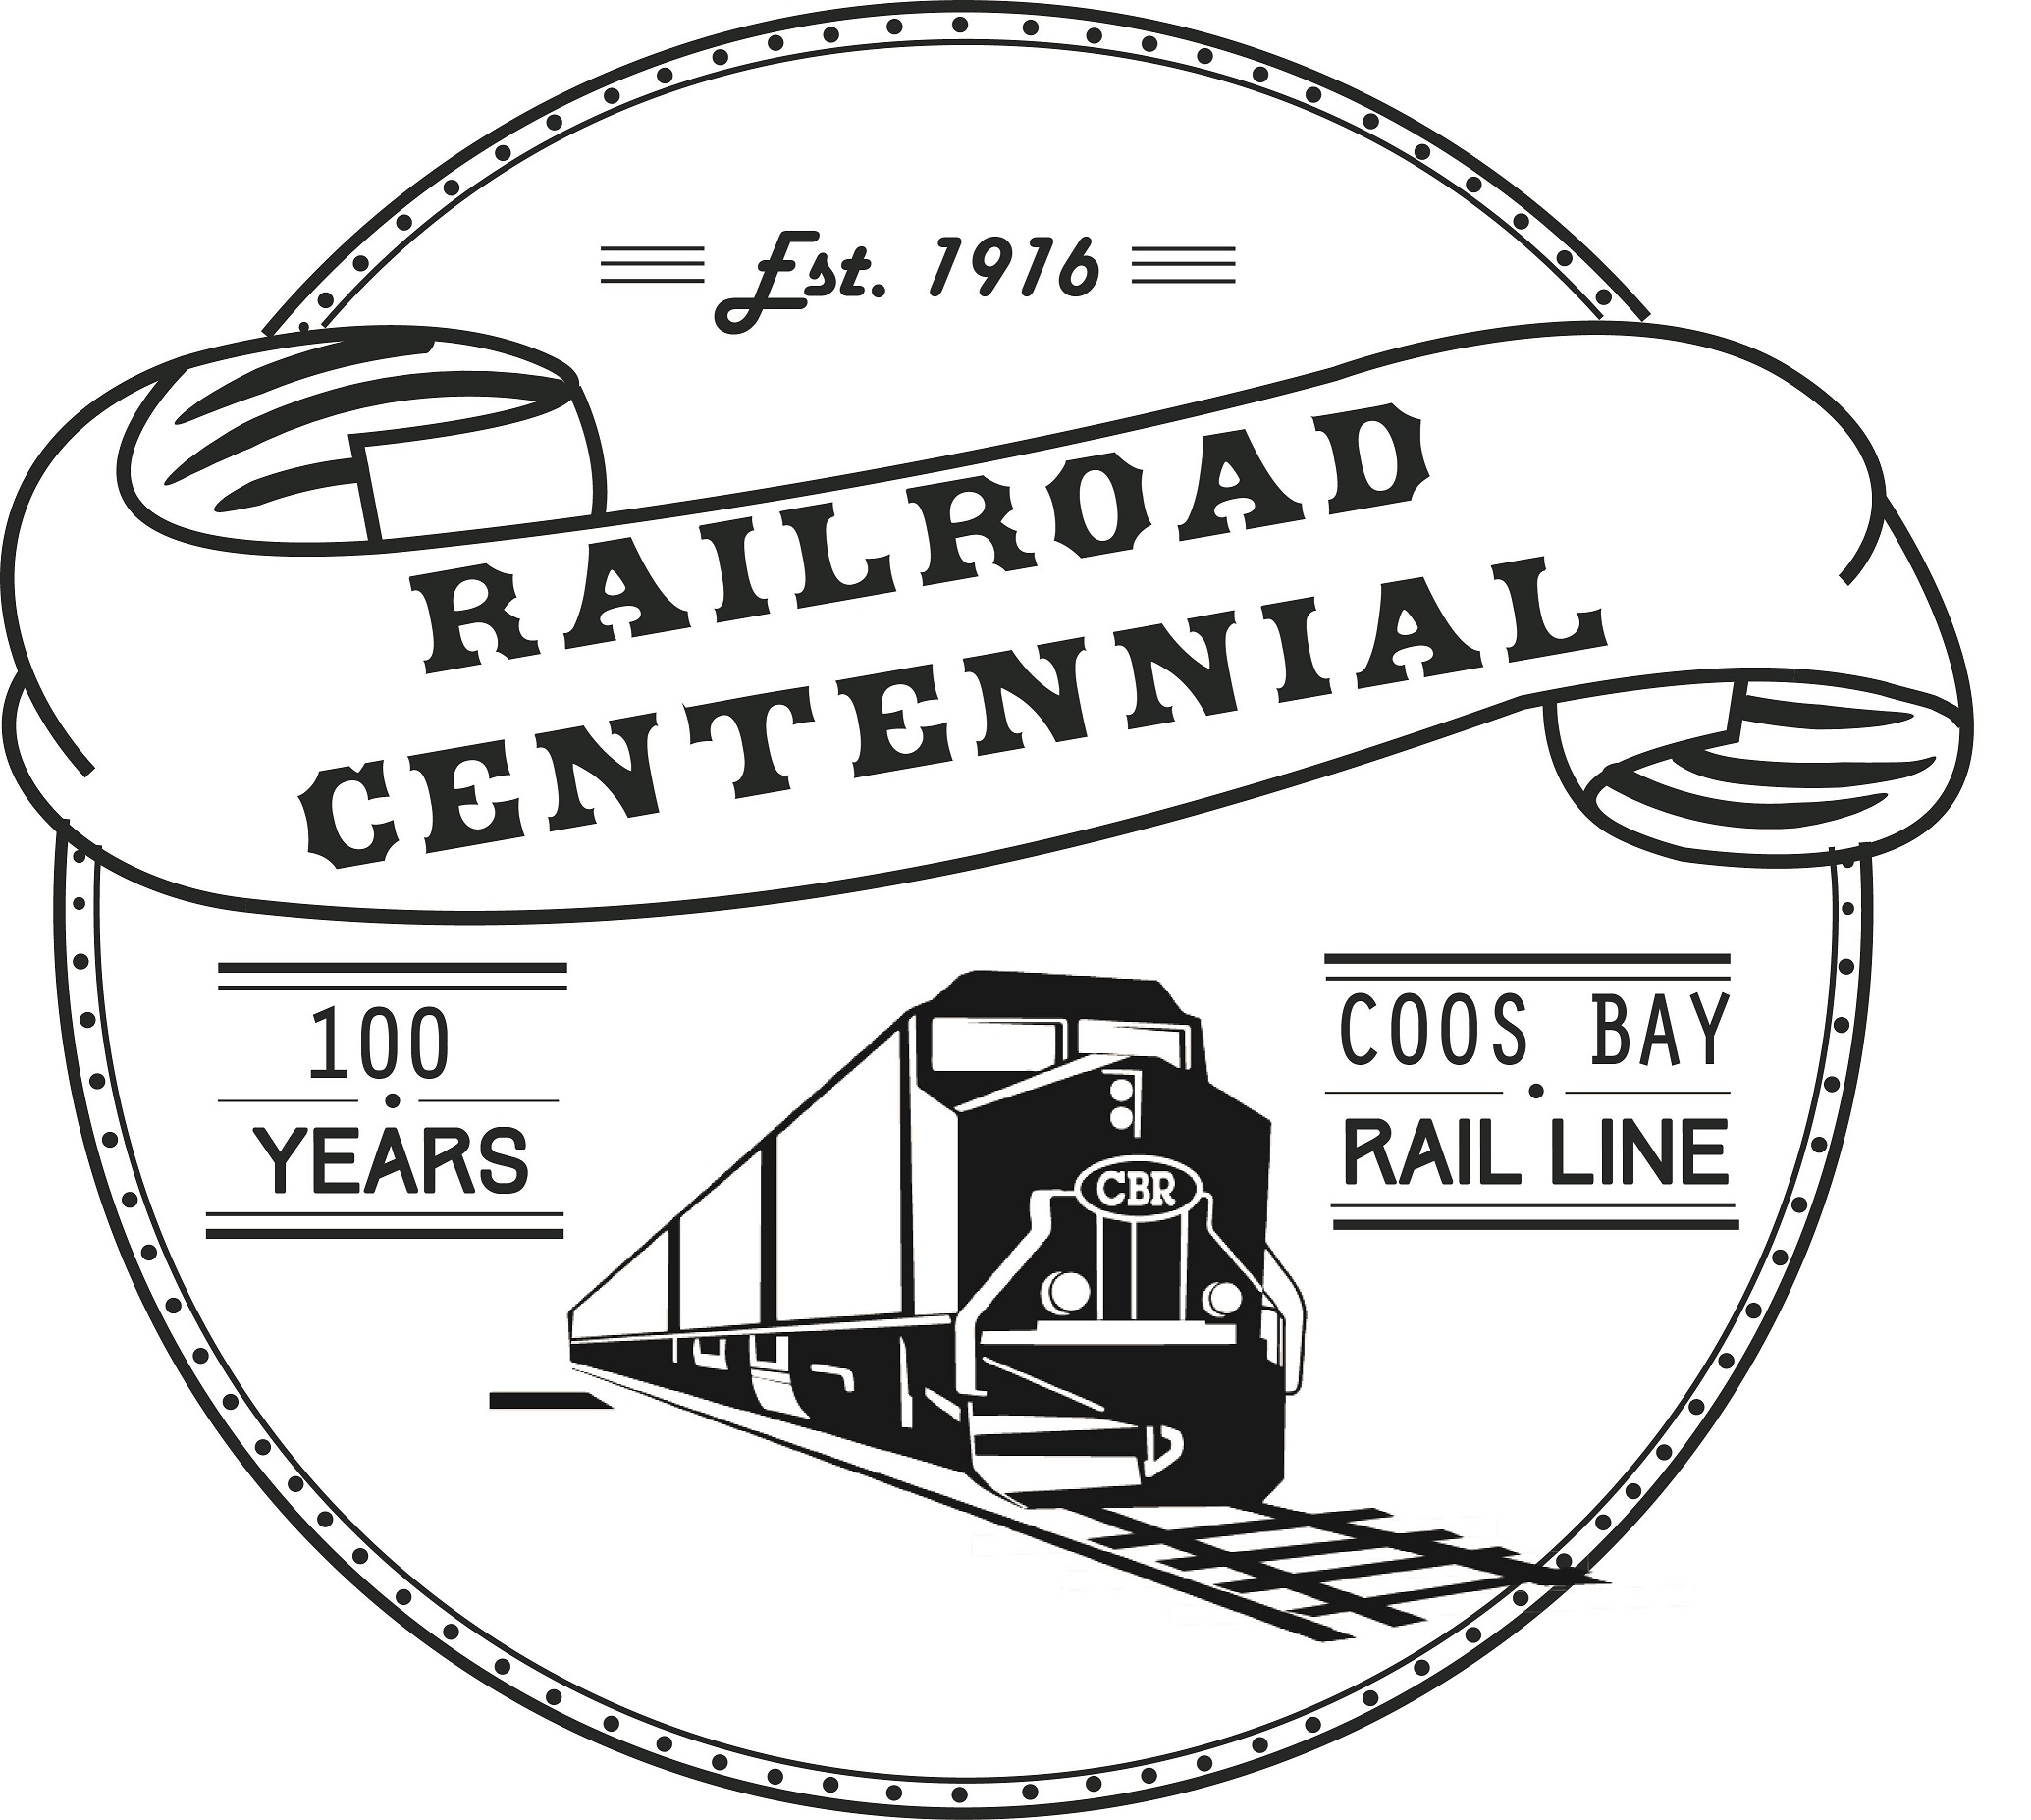 port of coos bay celebrates 100 years of the coos bay rail line at the railroad centennial celebration port of coos bay oregon s seaport [ 1500 x 1344 Pixel ]